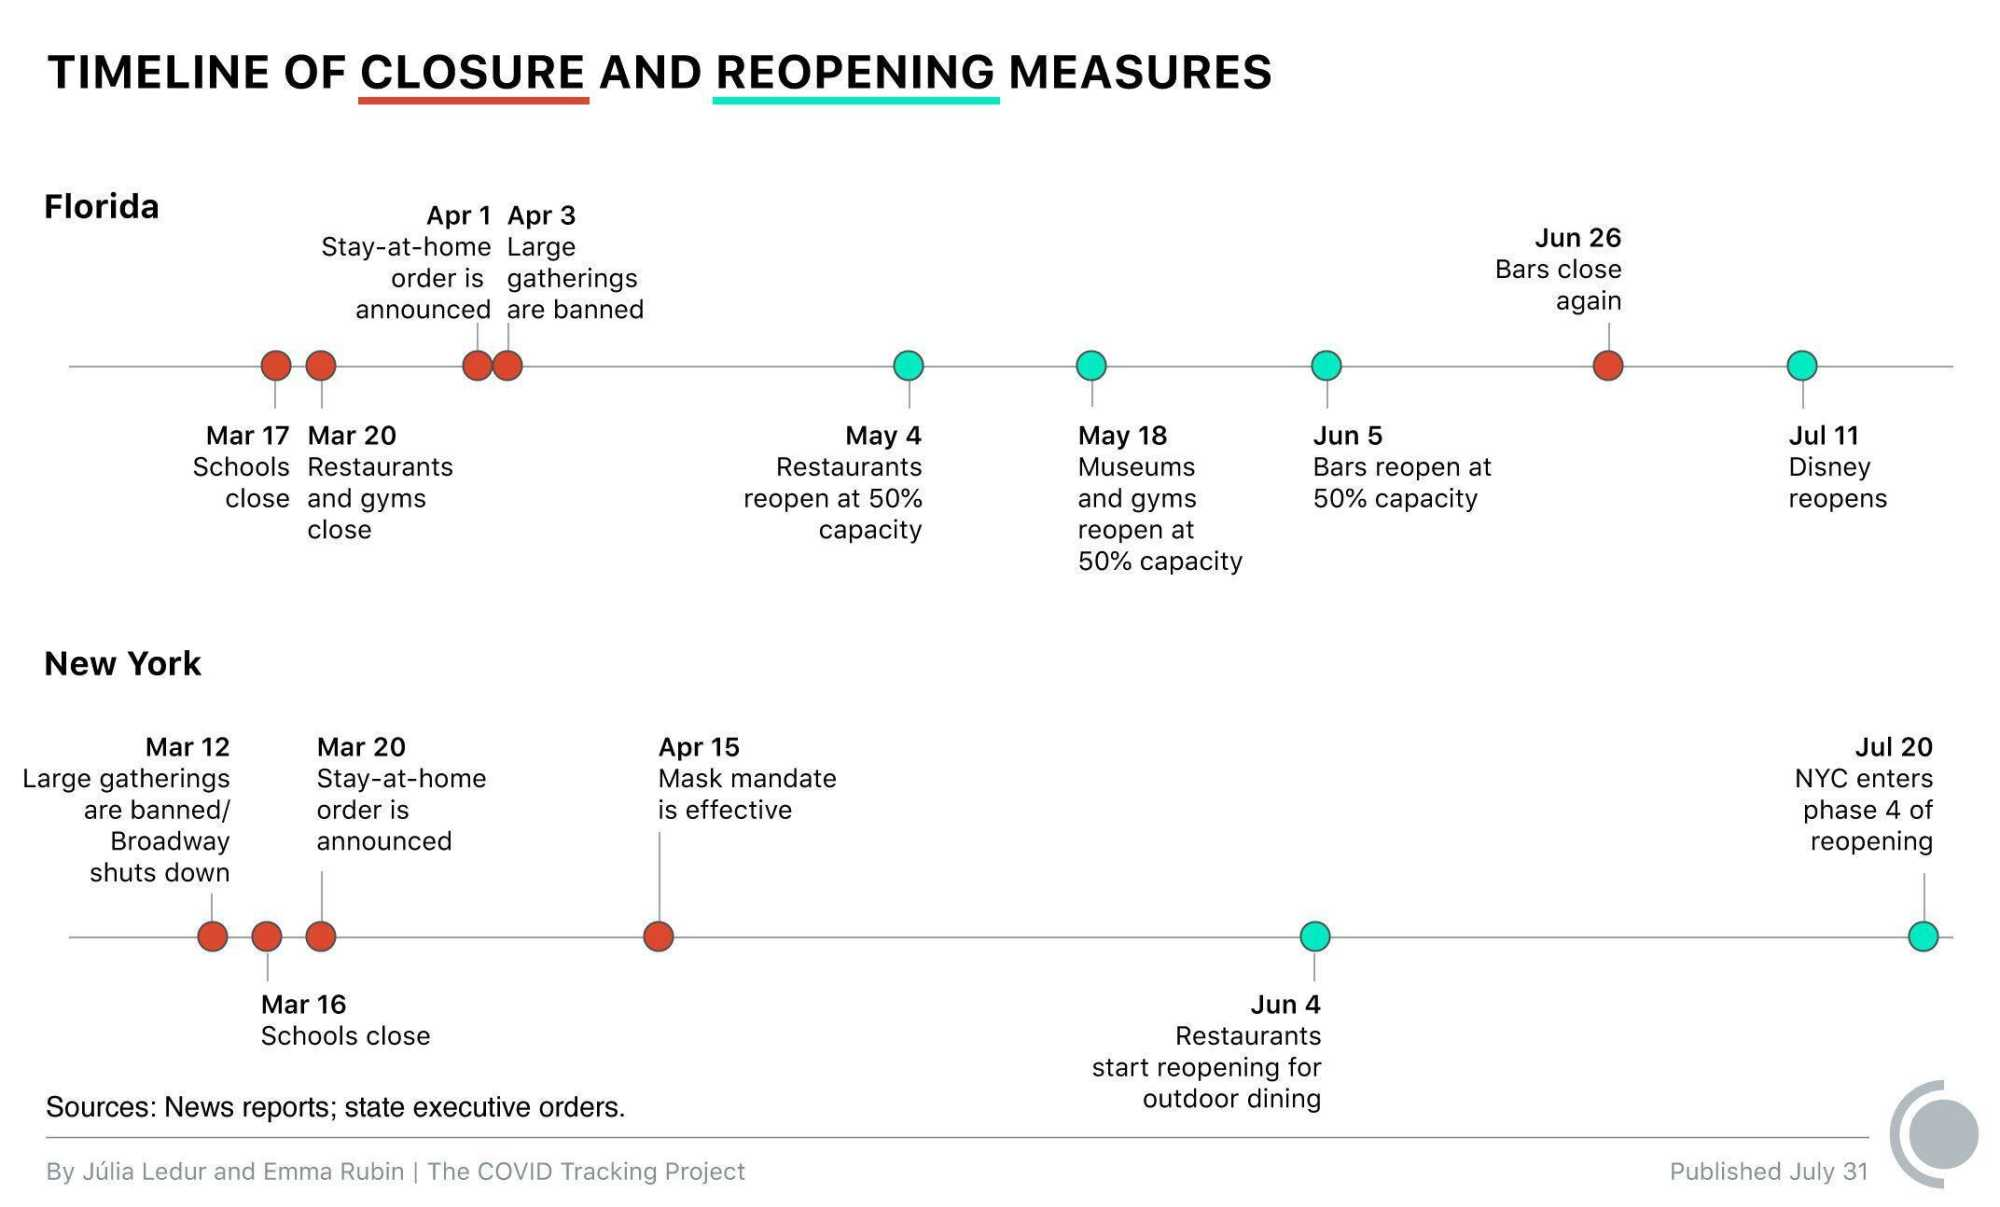 Timeline showing closure and reopening measures in Florida and New York, from March to July, 2020.